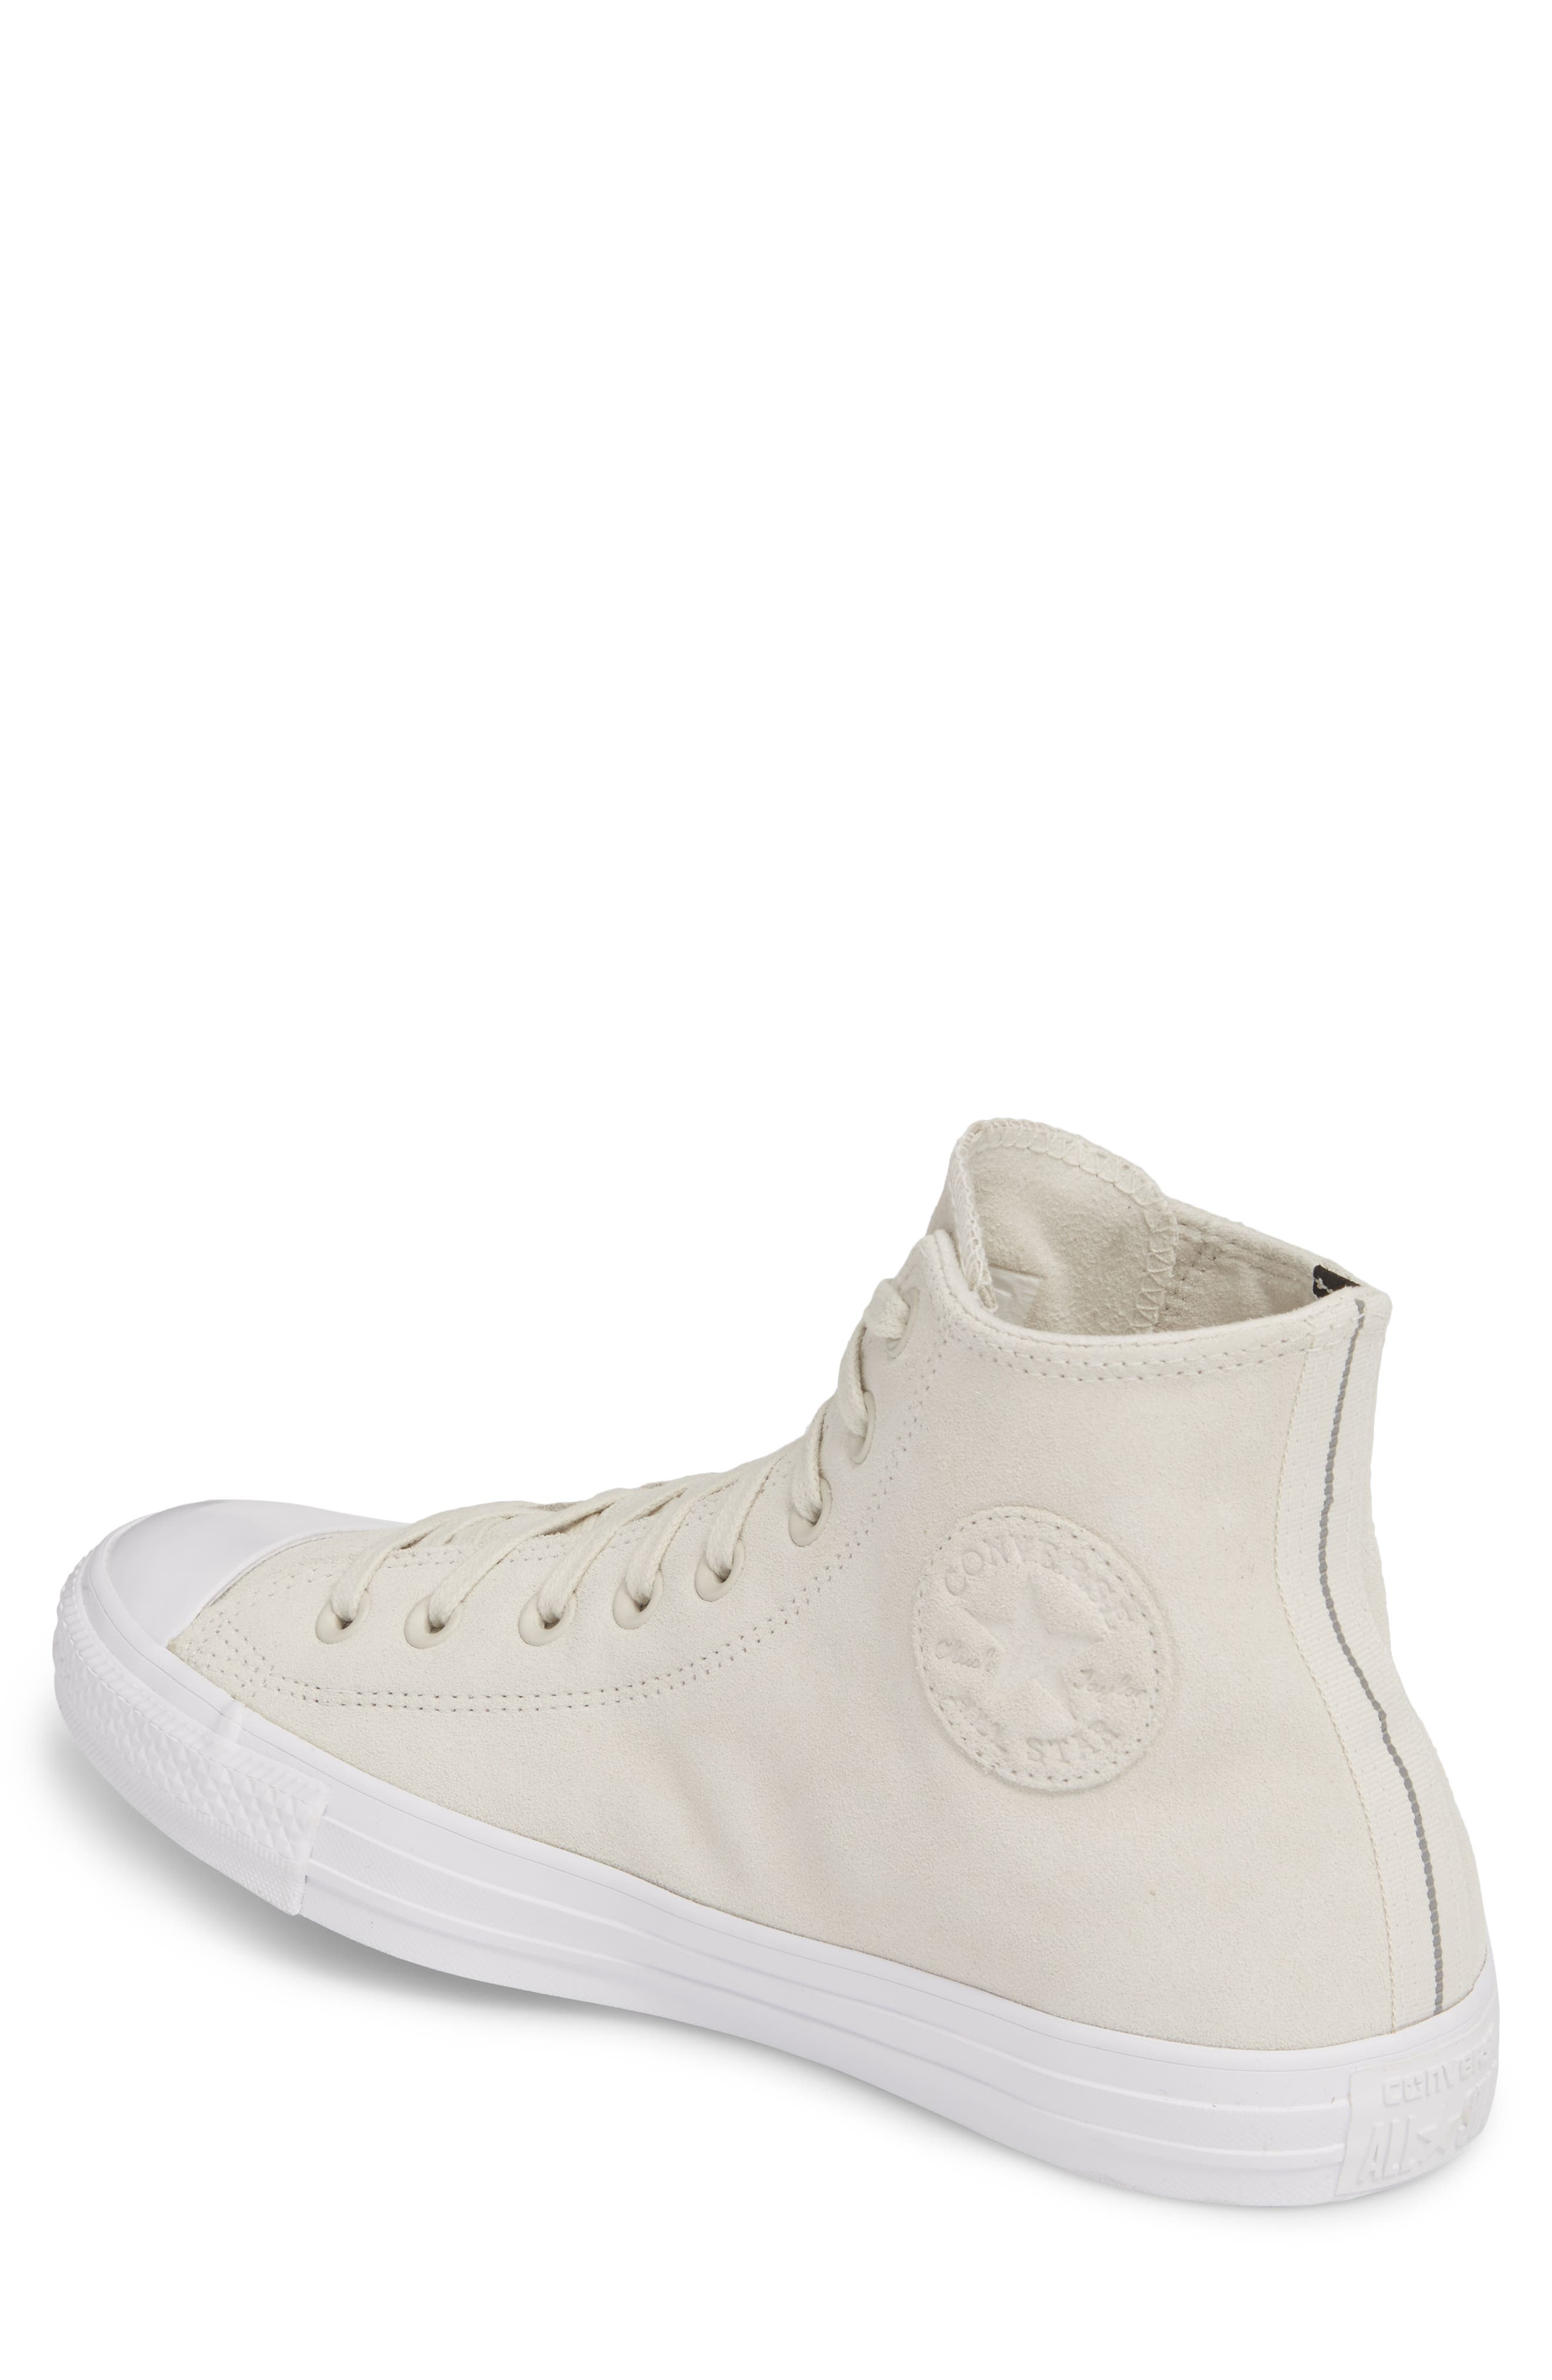 Chuck Taylor<sup>®</sup> All Star<sup>®</sup> Plush Hi Sneaker,                             Alternate thumbnail 2, color,                             Buff Suede